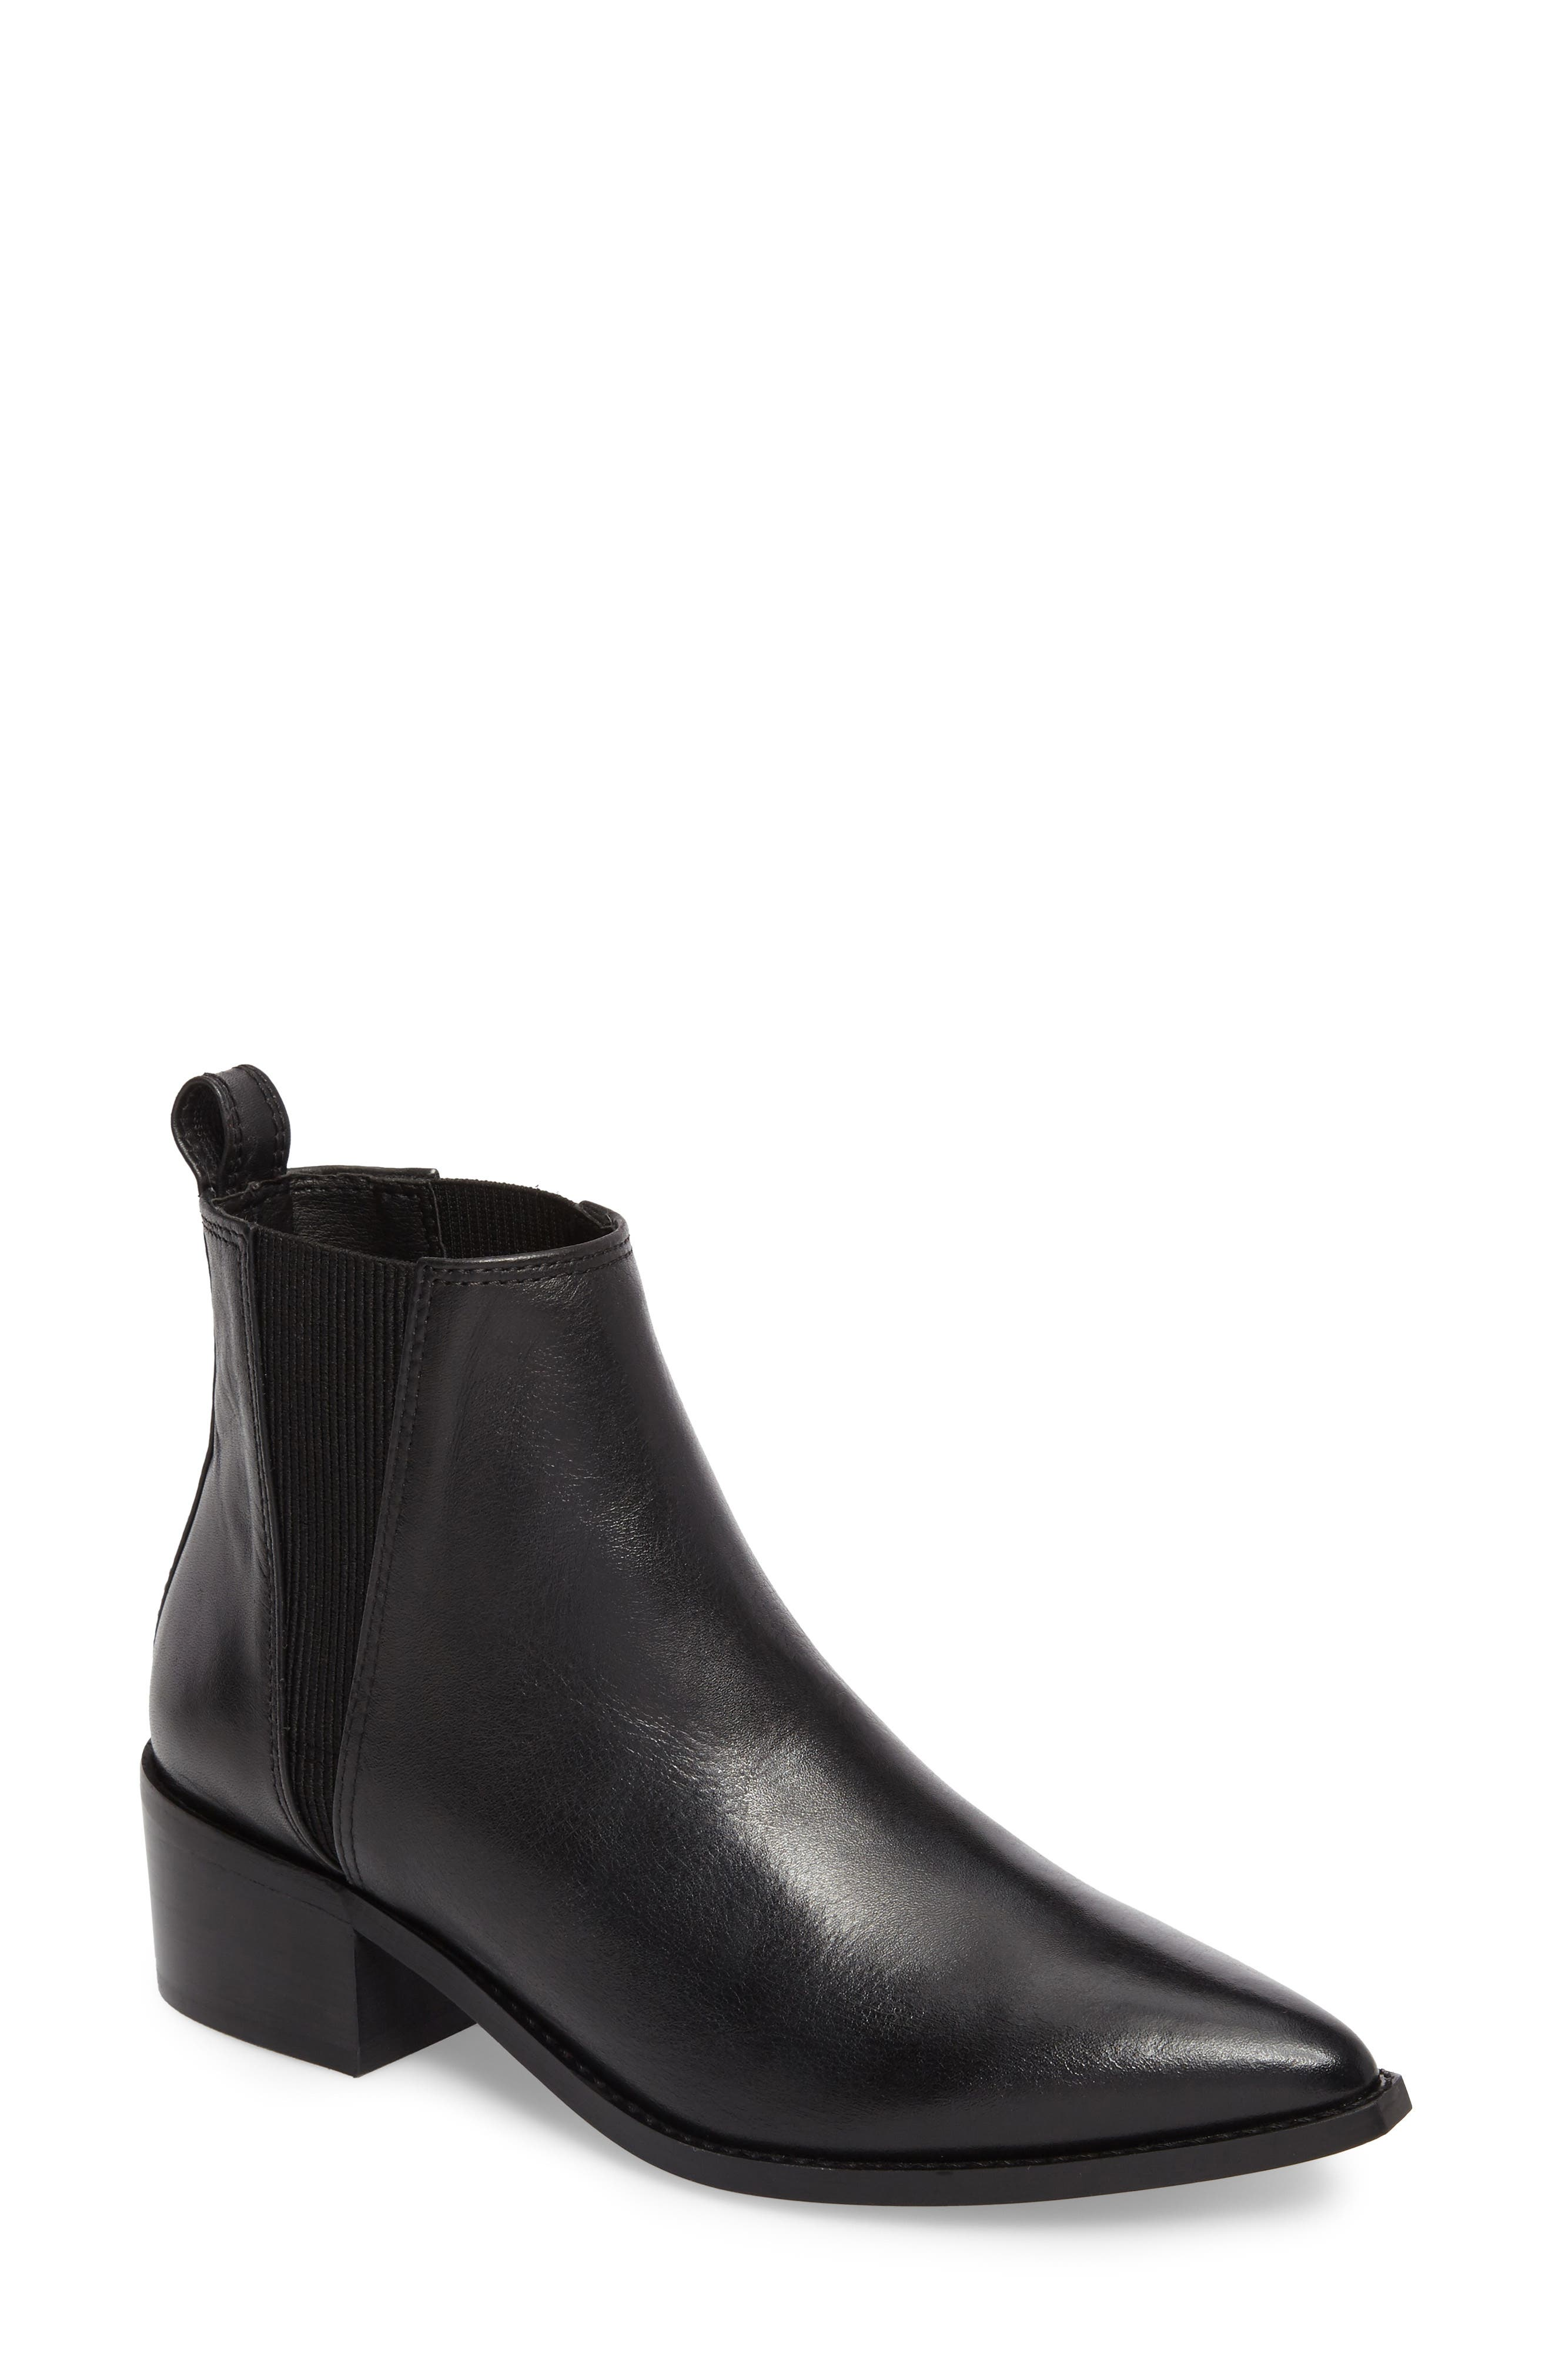 Ula Chelsea Bootie,                         Main,                         color, Black